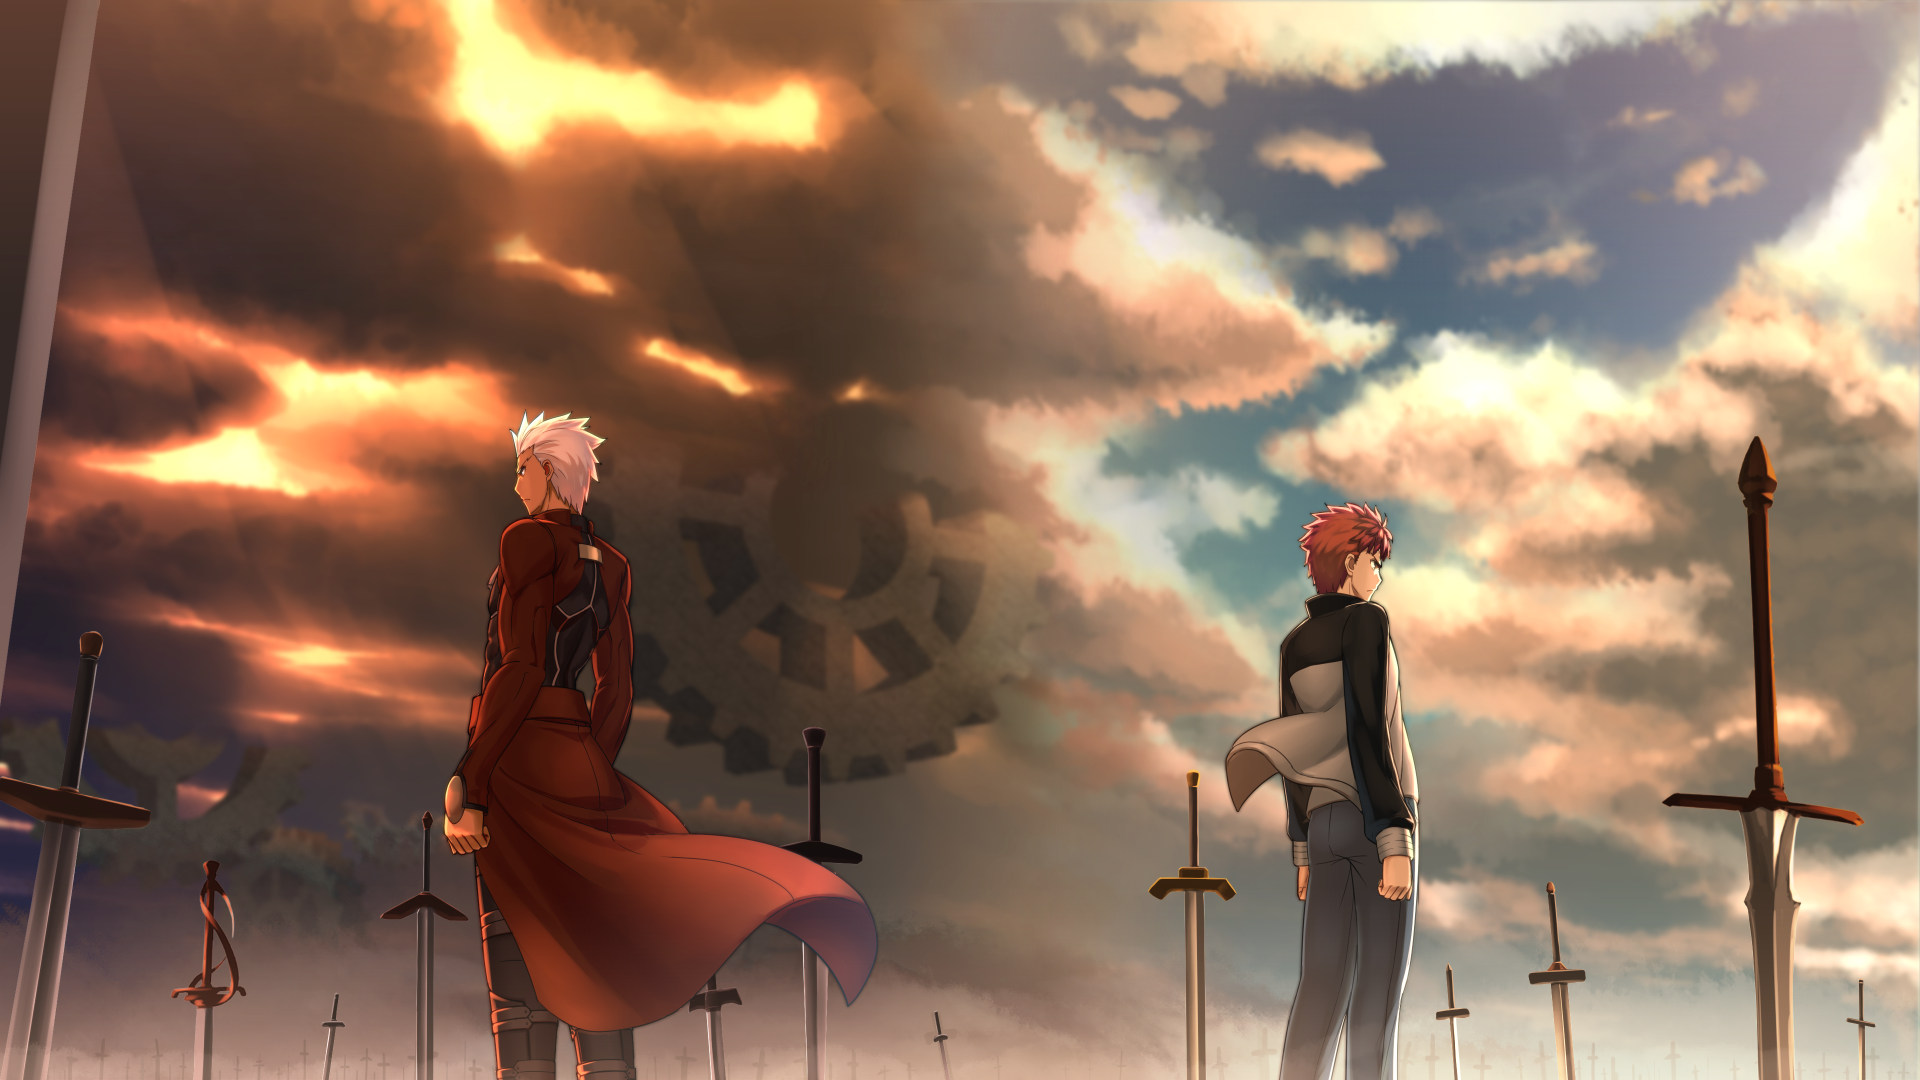 Fate/Stay Night: Unlimited Blade Works 4k Ultra HD